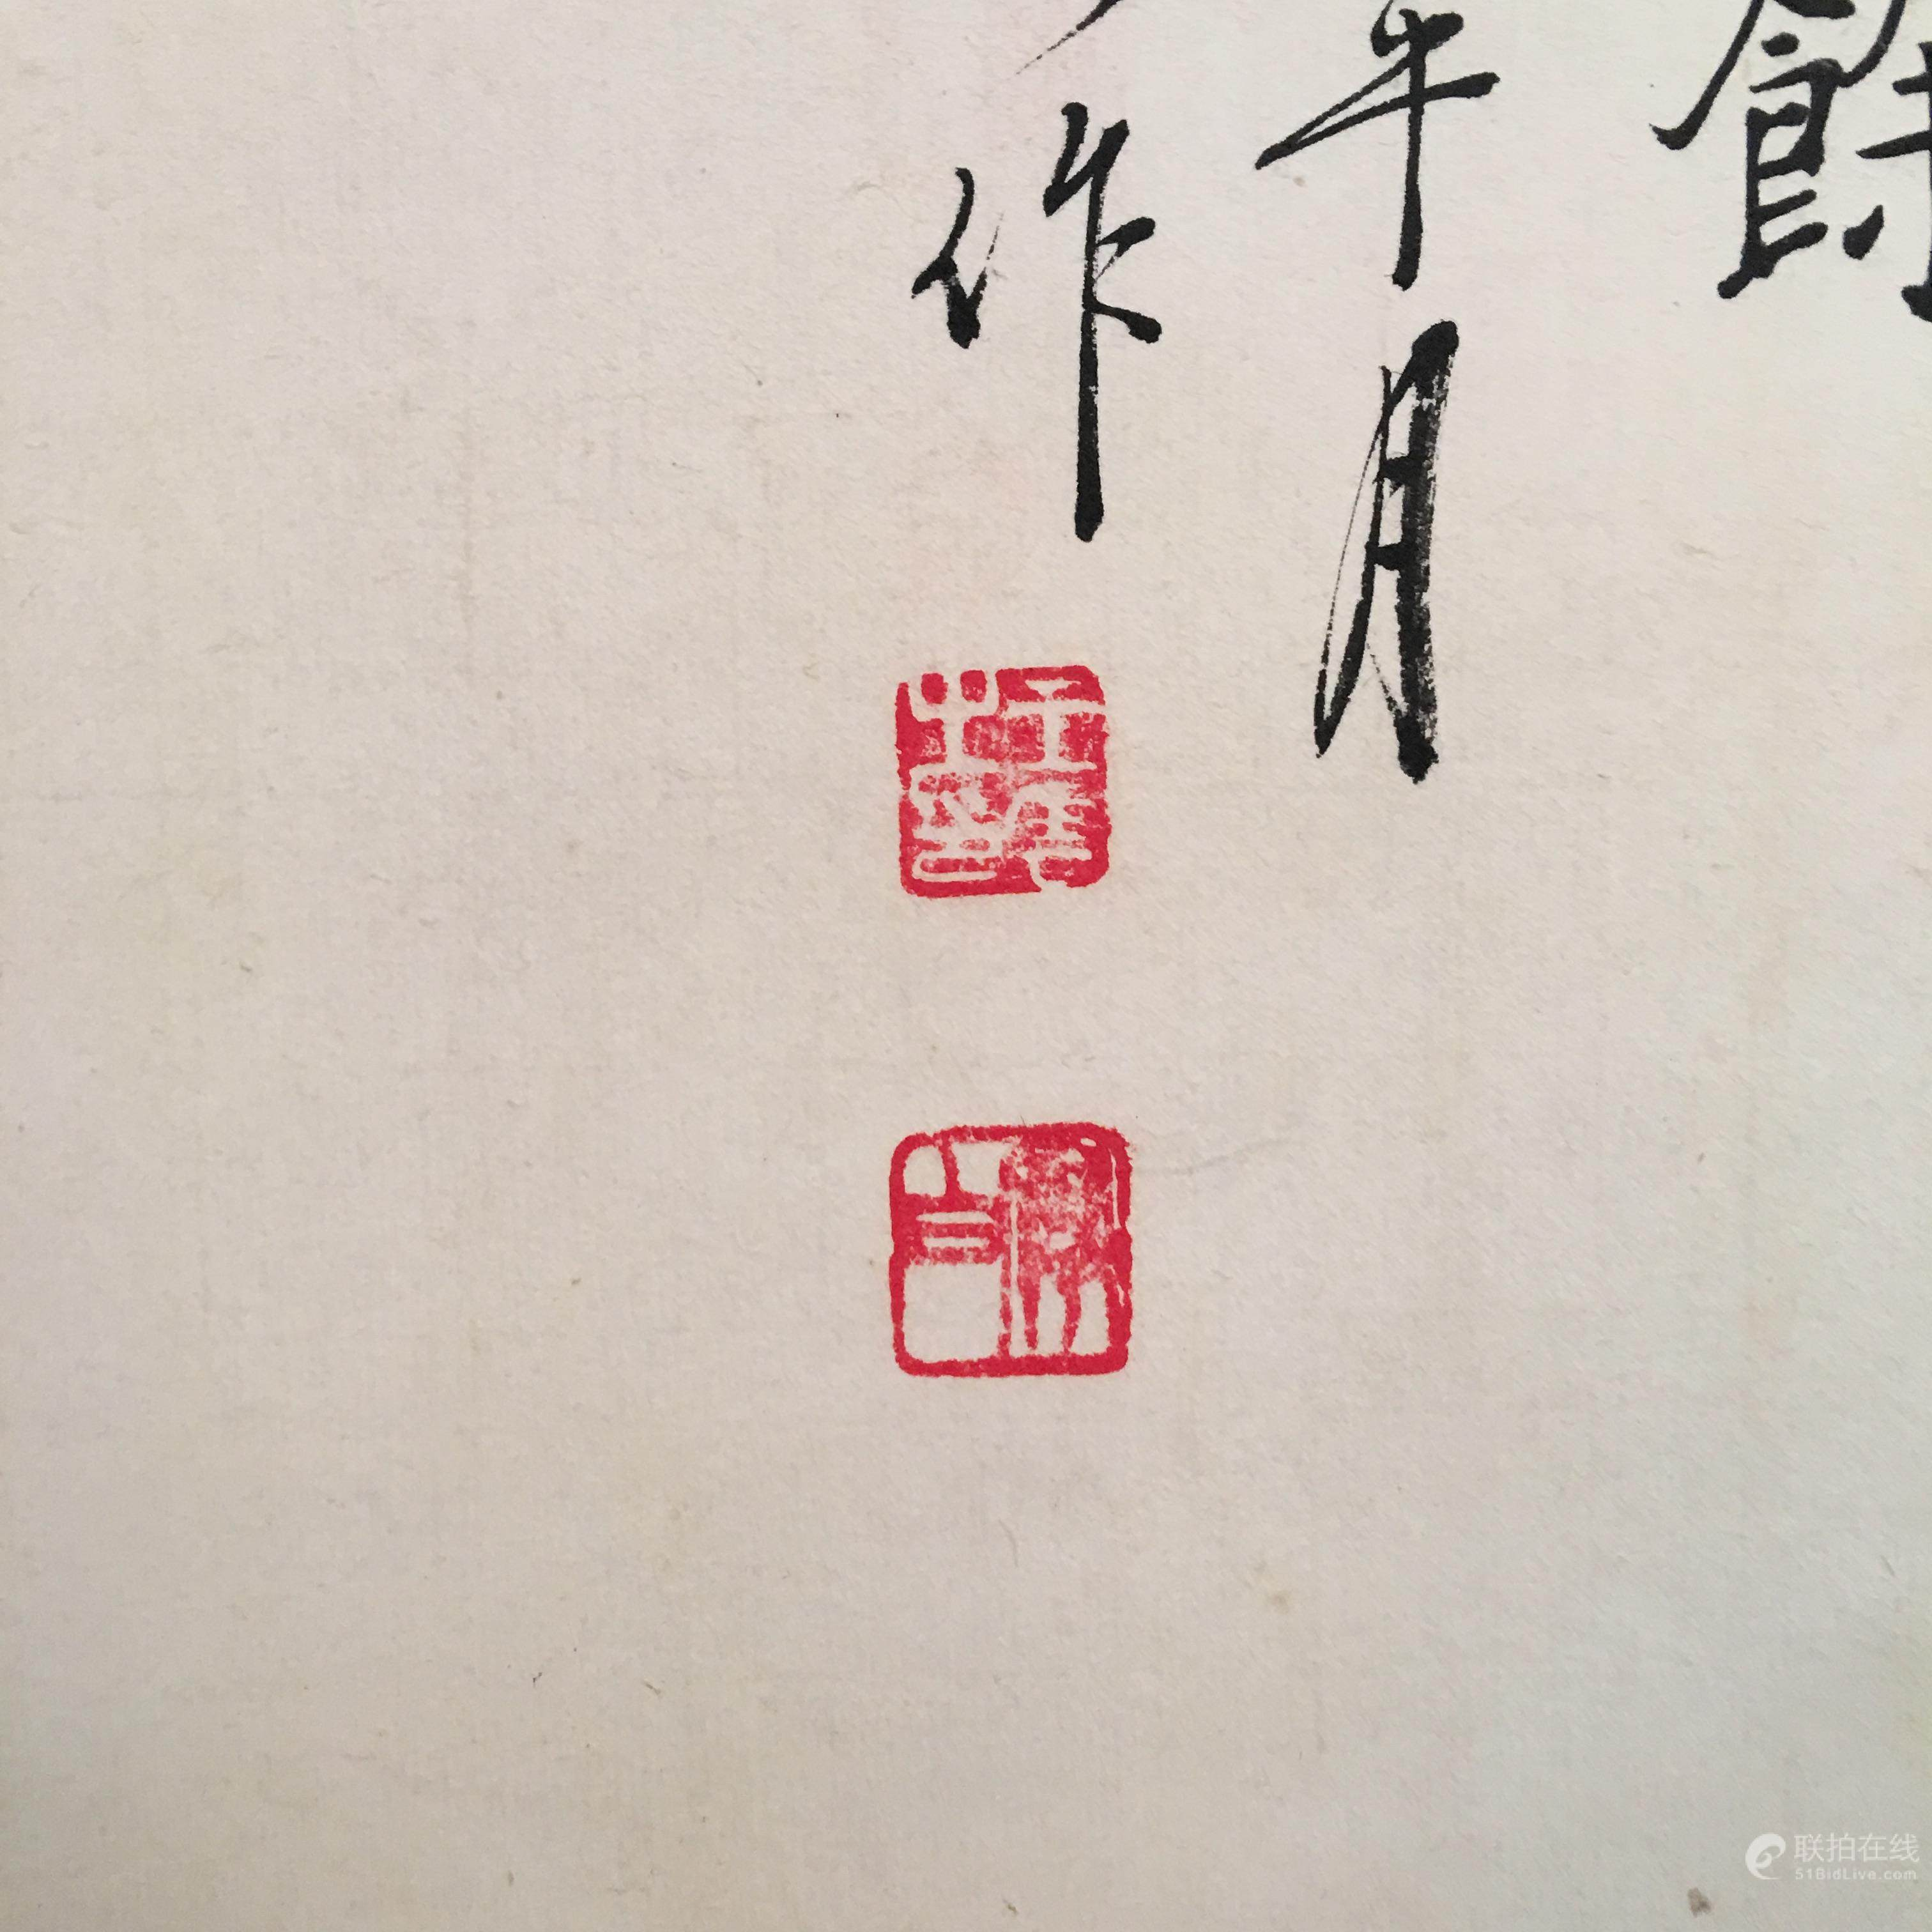 51BidLive-[Chinese Hanging Scroll of 'Flowers' Painting]